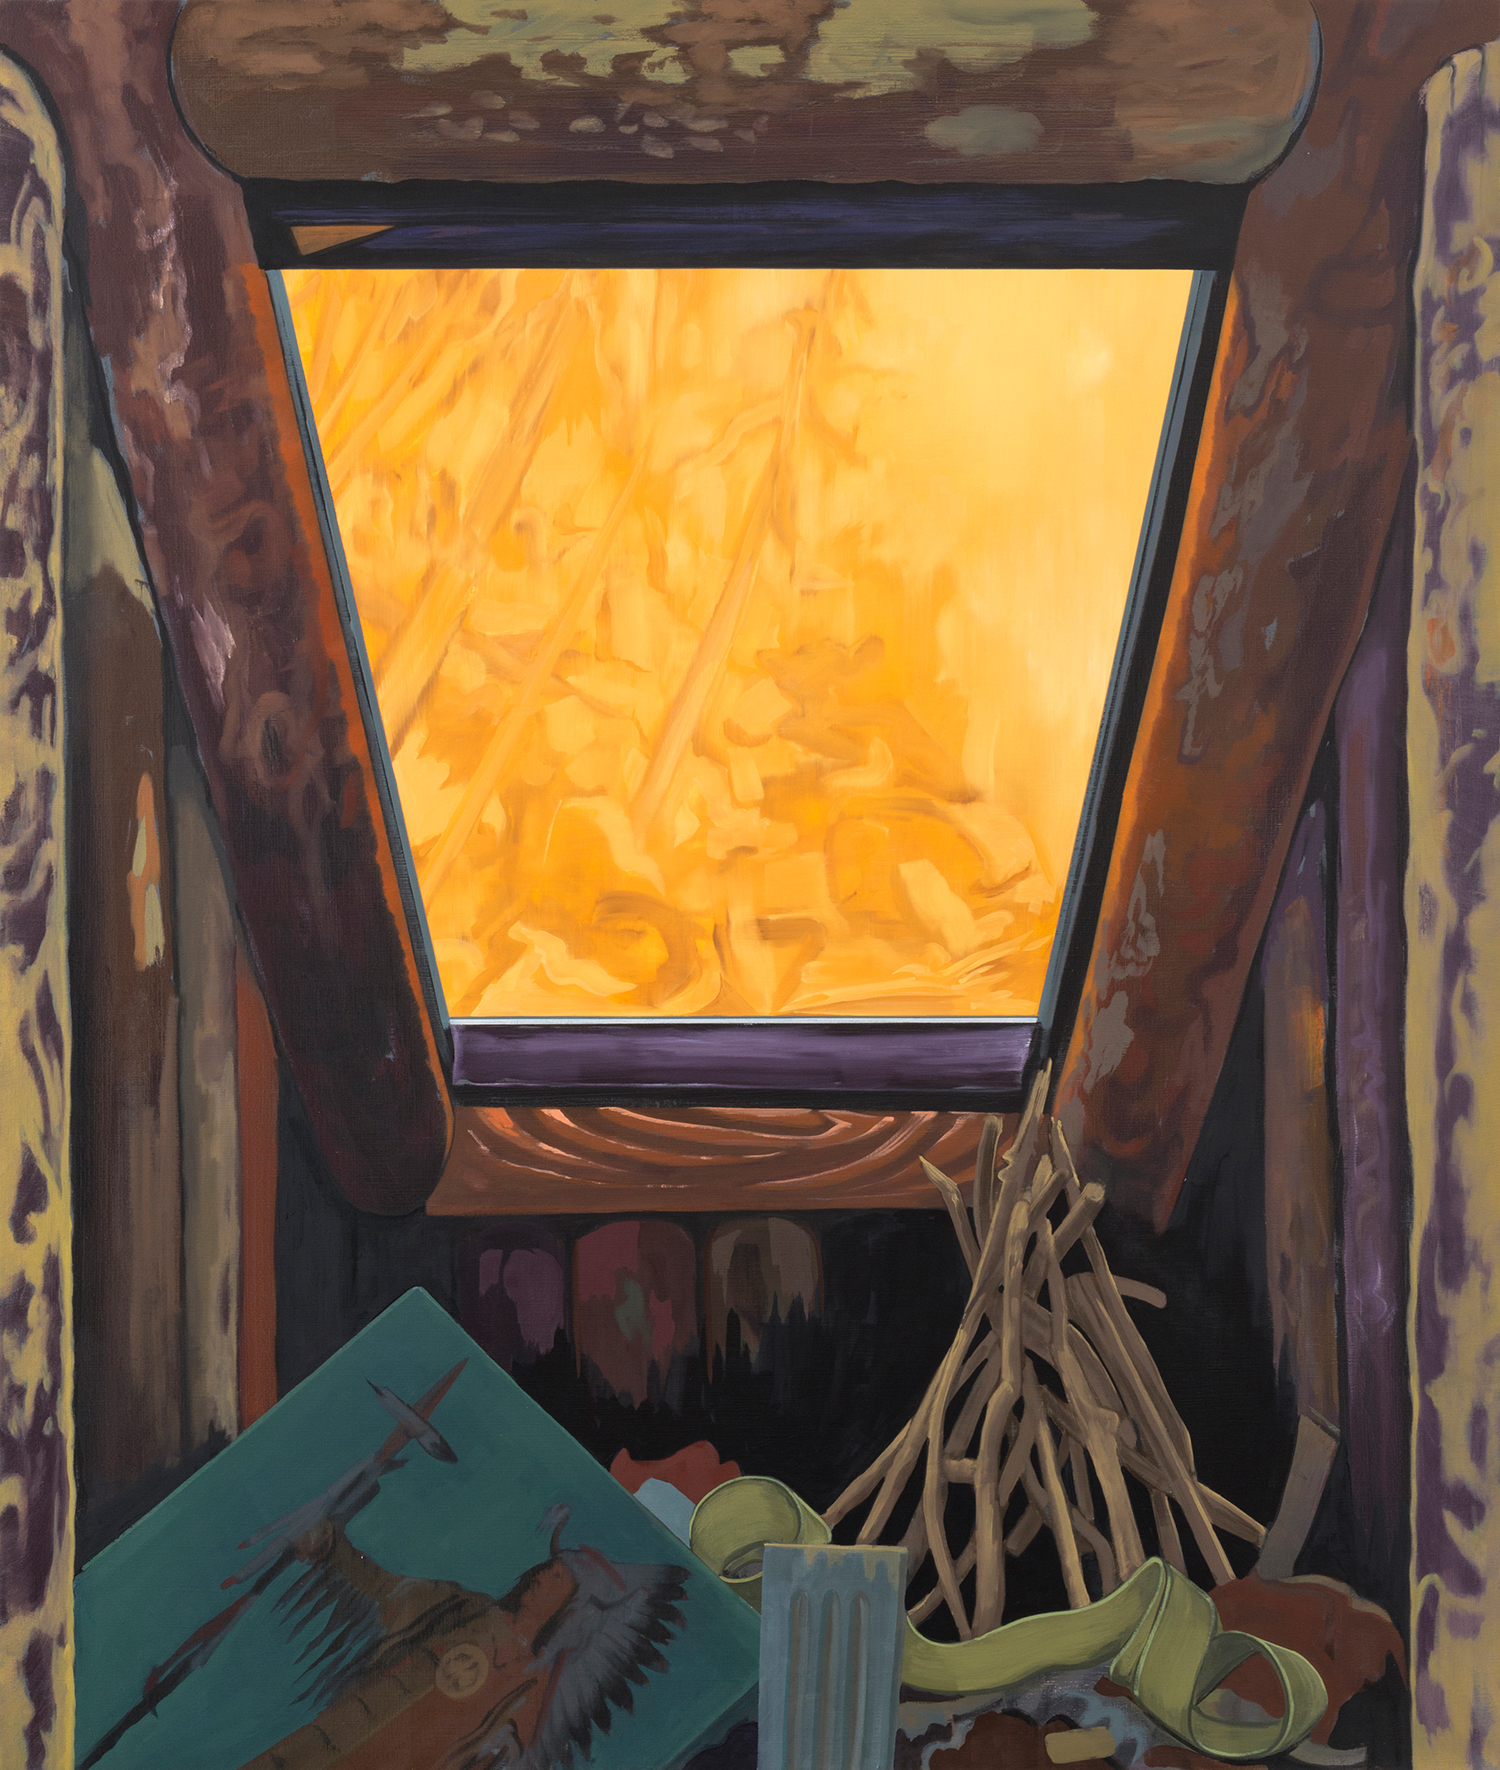 Bunker , 2013. oil on canvas, 72 x 60 inches